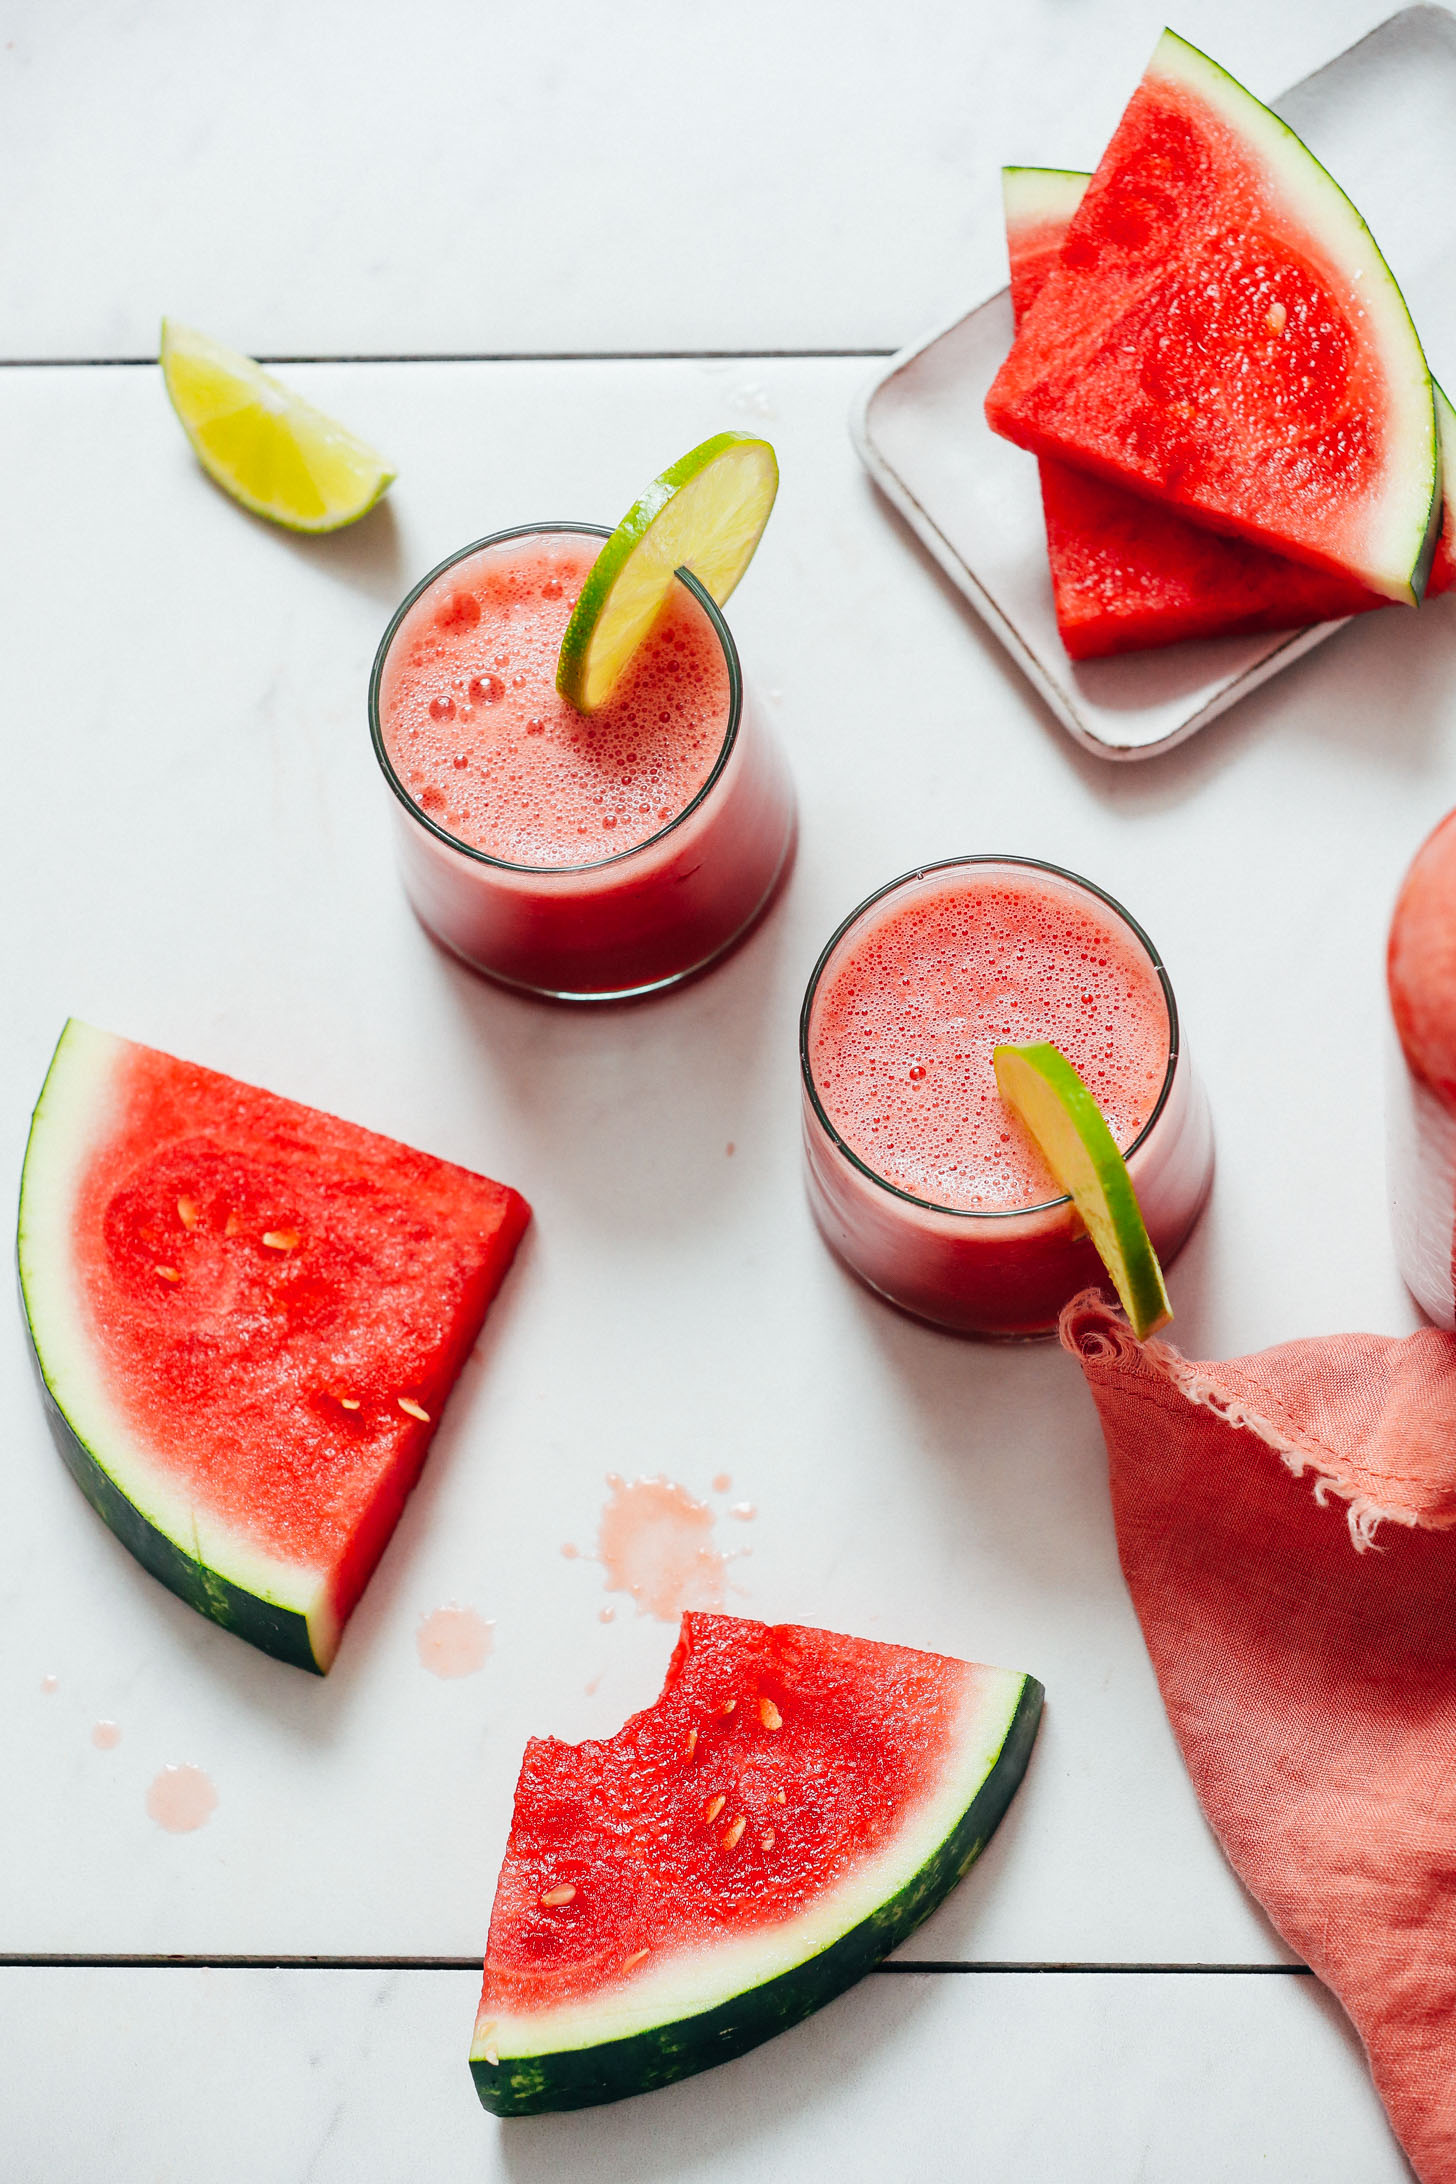 Watermelon slices next to two glasses of watermelon juice